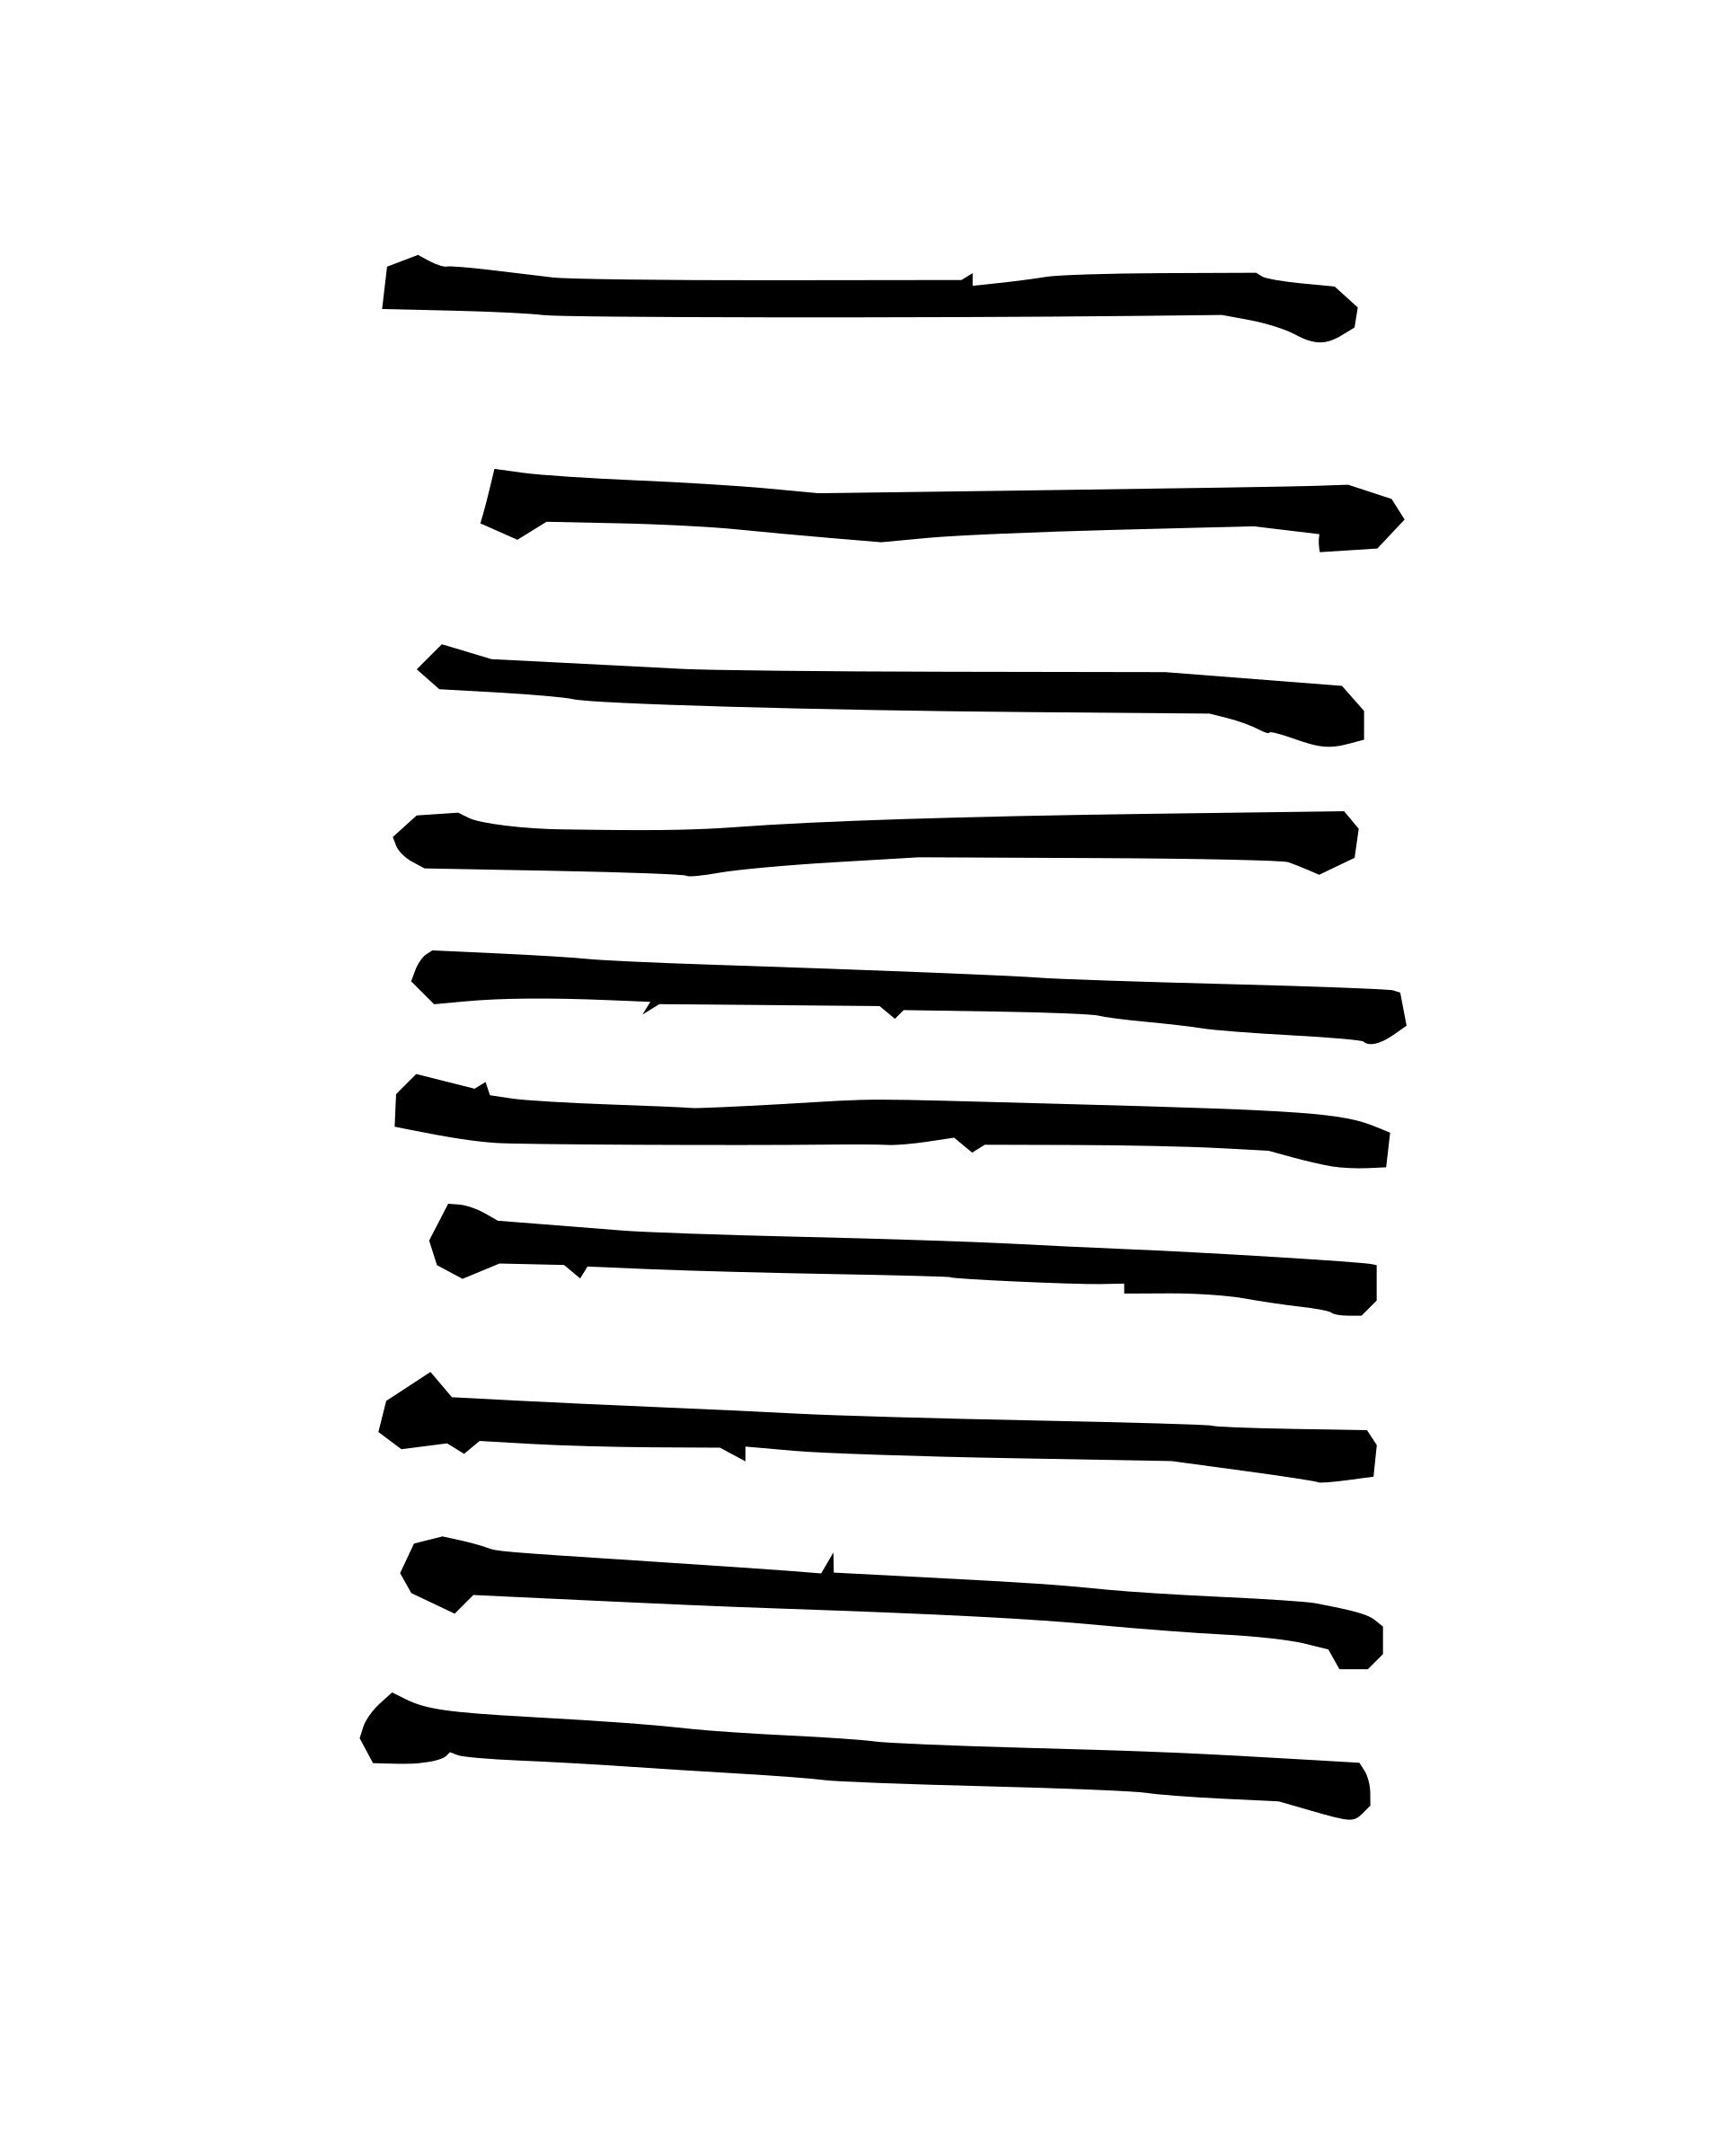 Notebook Lines Clipart